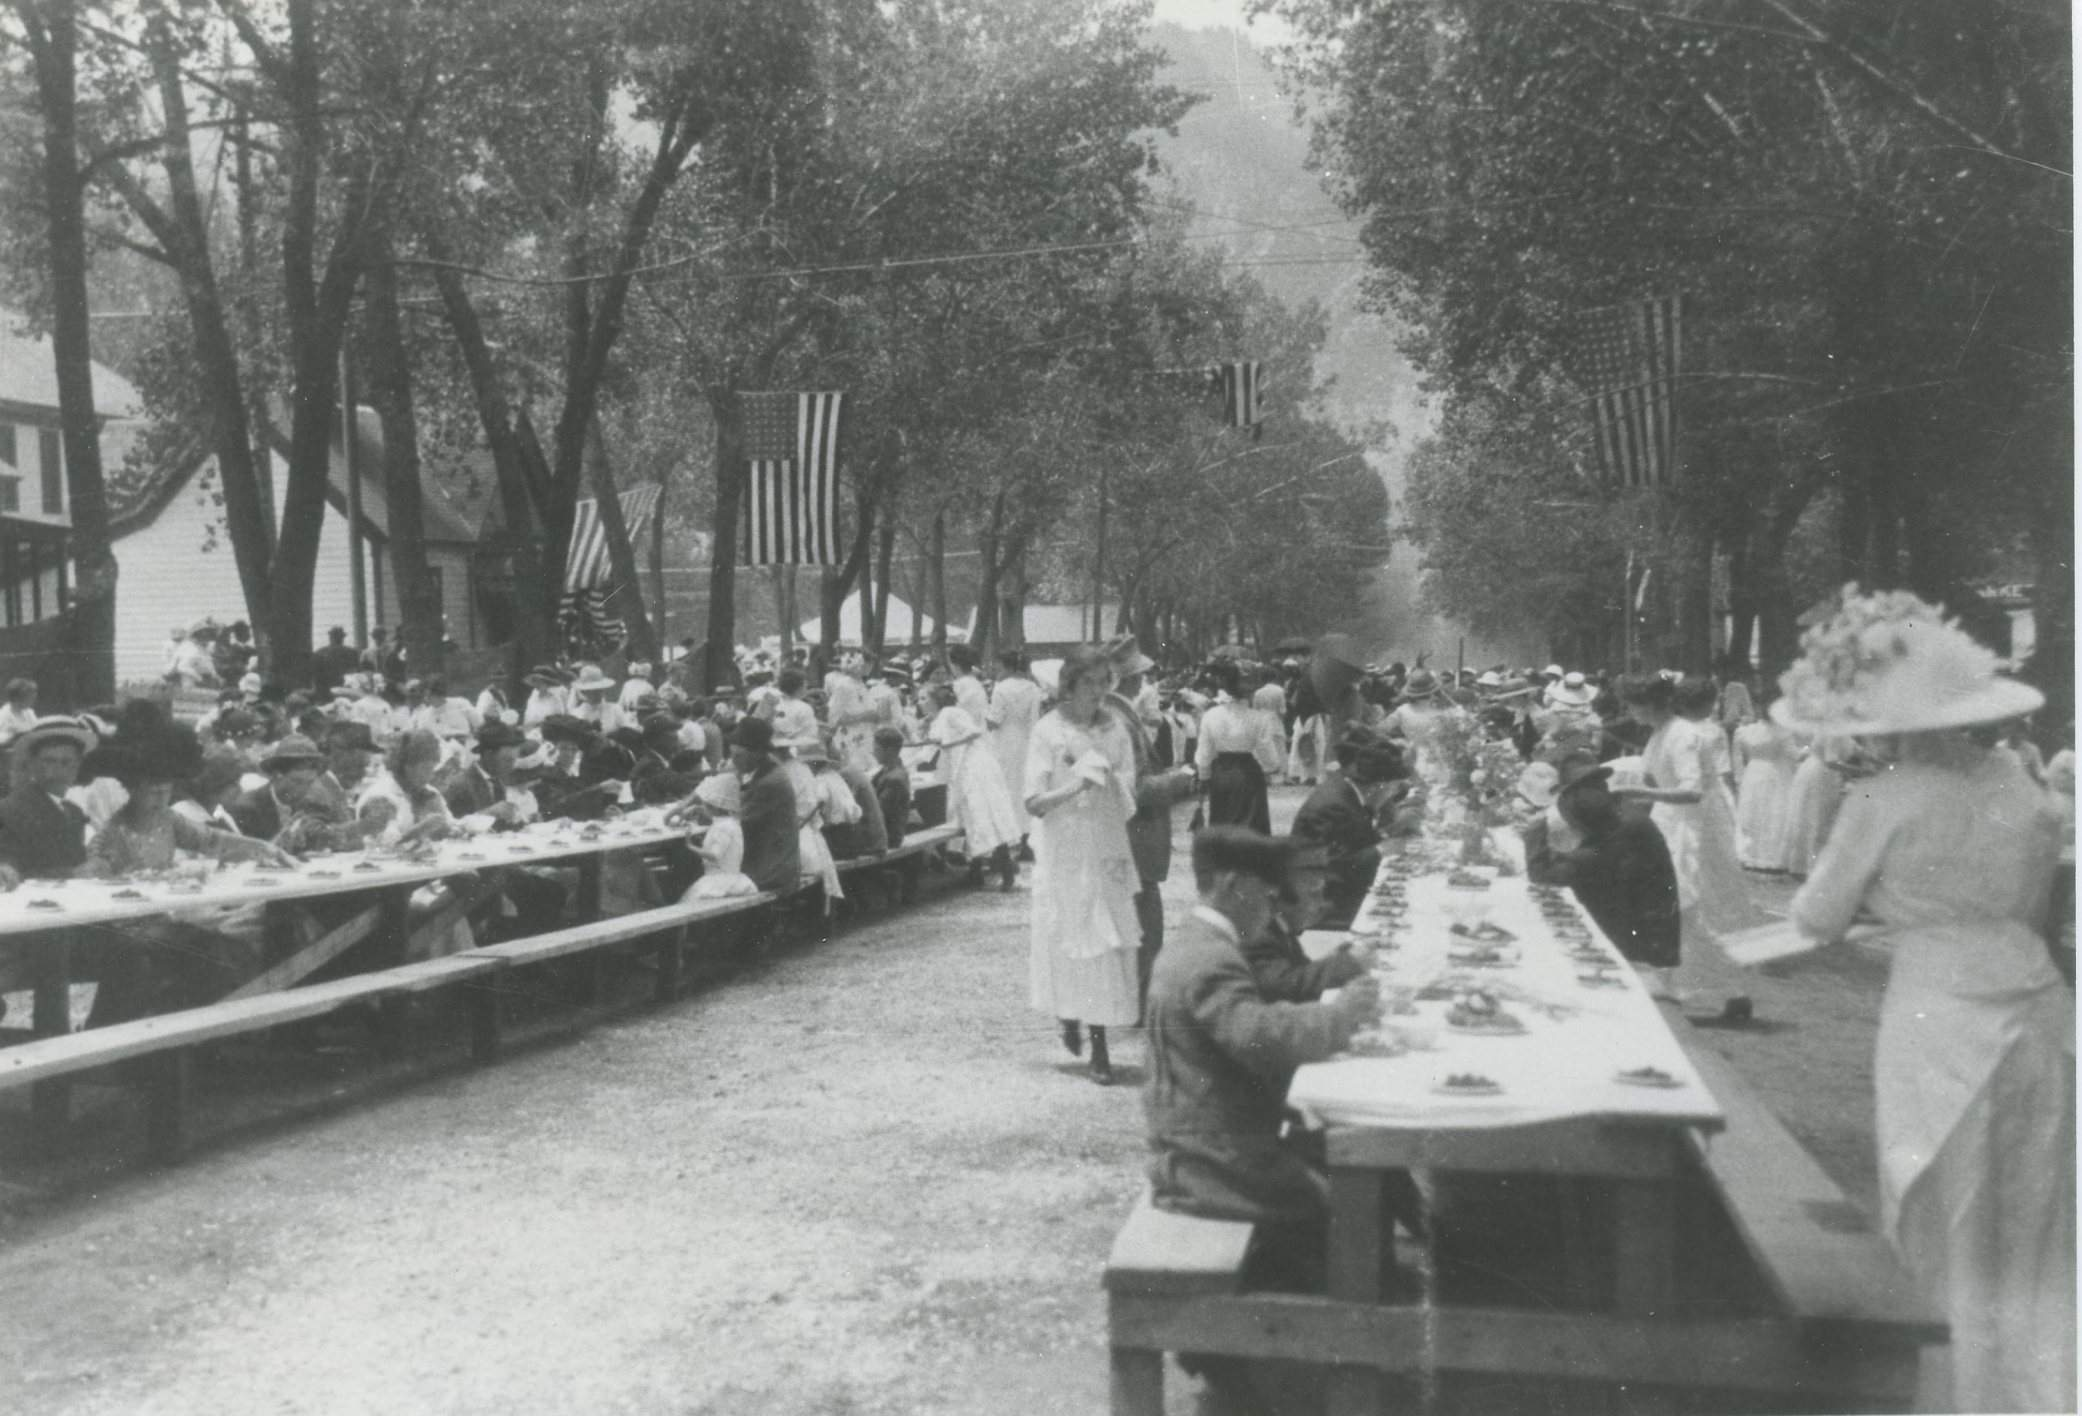 The 1910 Strawberry Days celebration!